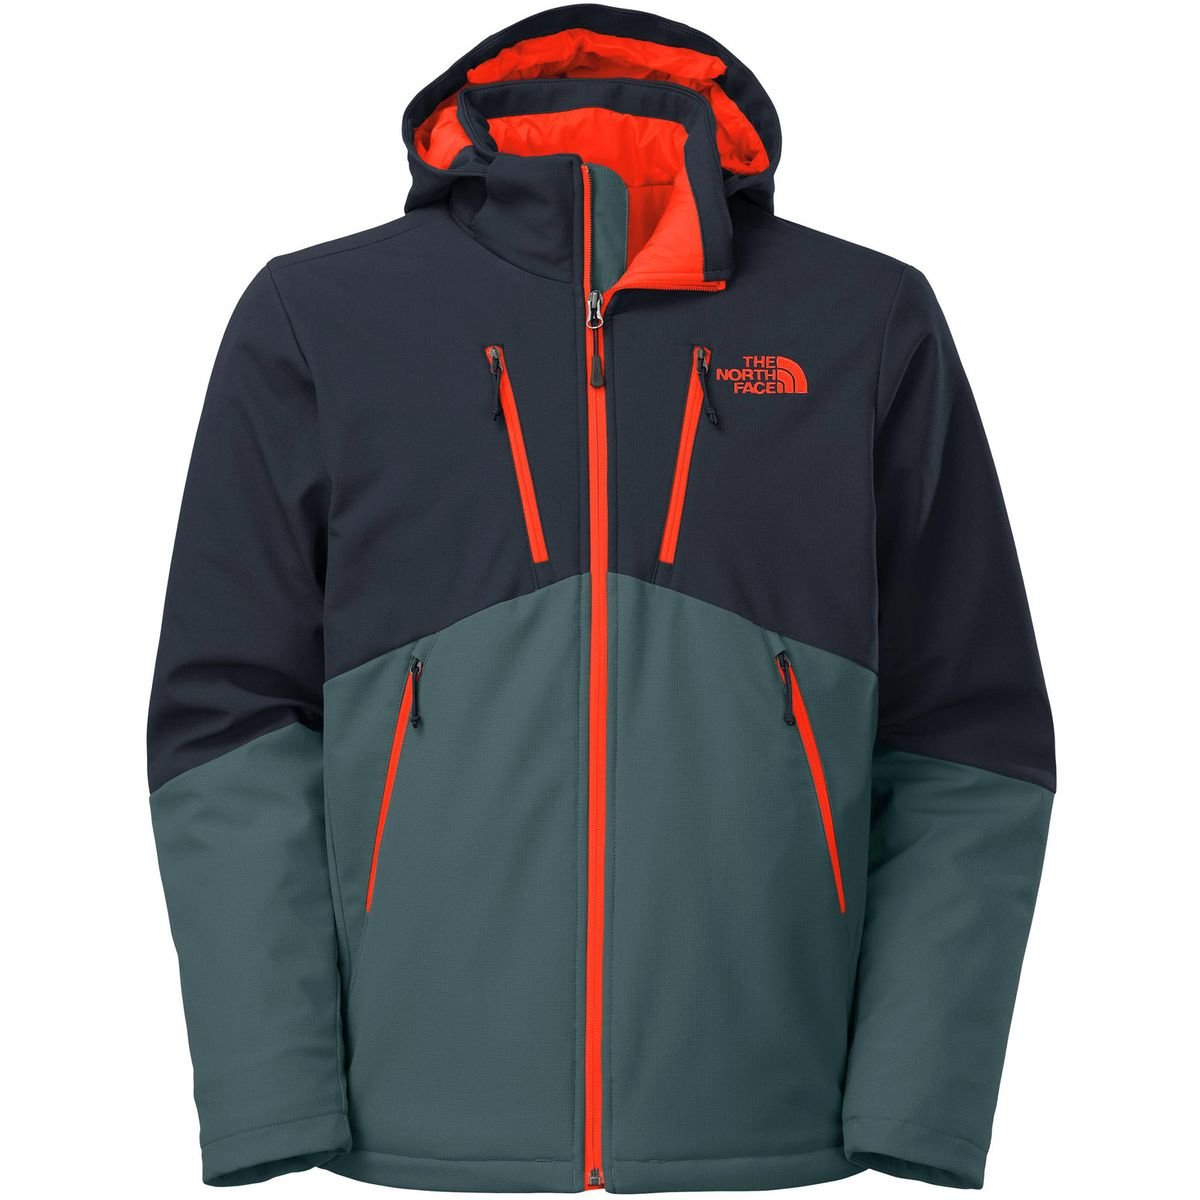 43c5385c759dd ... discount code for amazon the north face menfs apex elevation jacket  sports outdoors 811a6 4633f